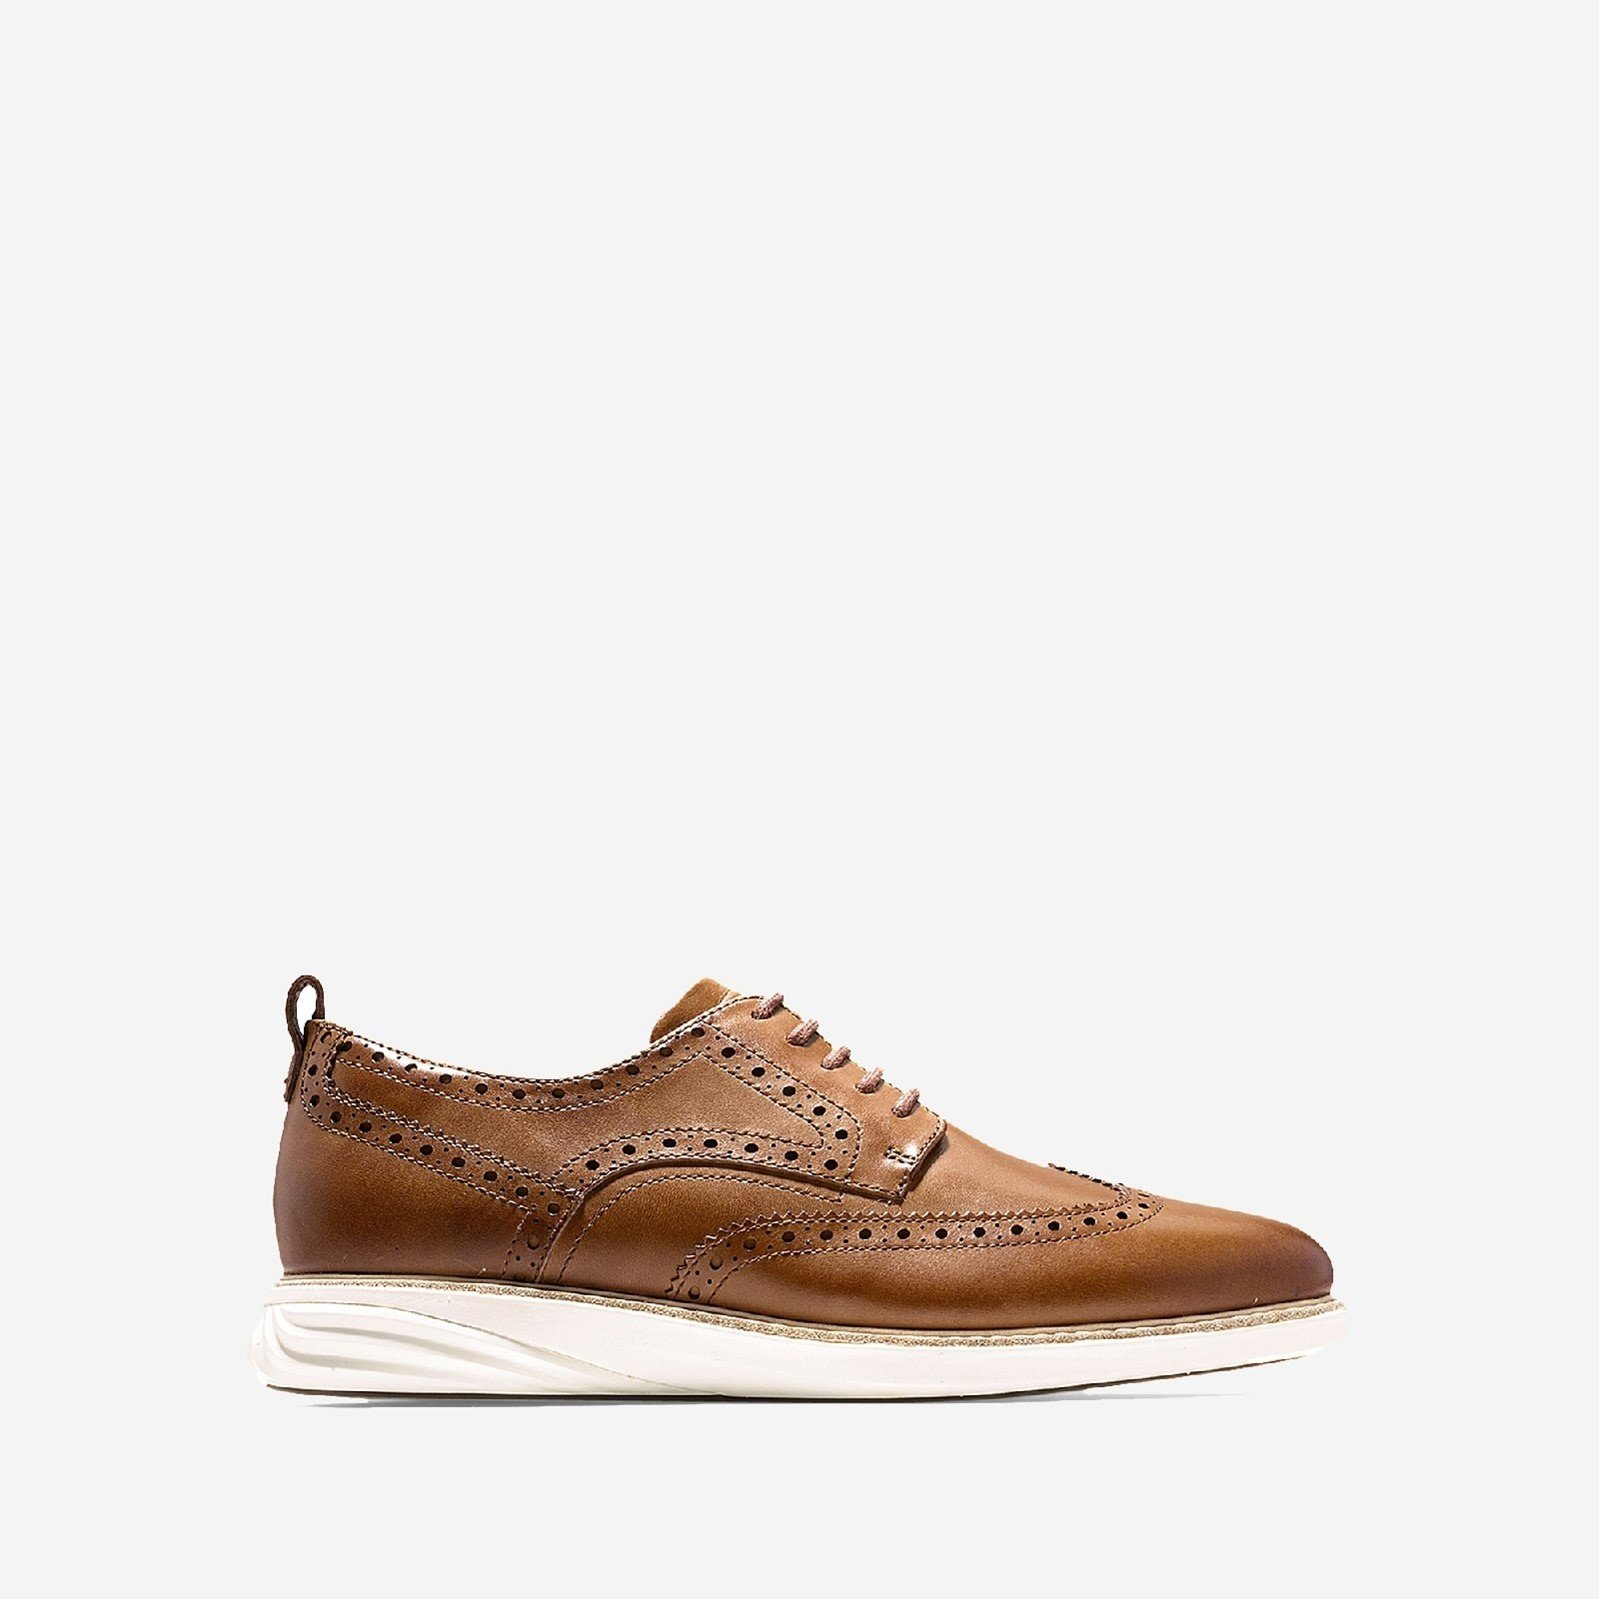 Cole Haan Tan/Ivory Grandevolution Shortwing Oxford Shoe